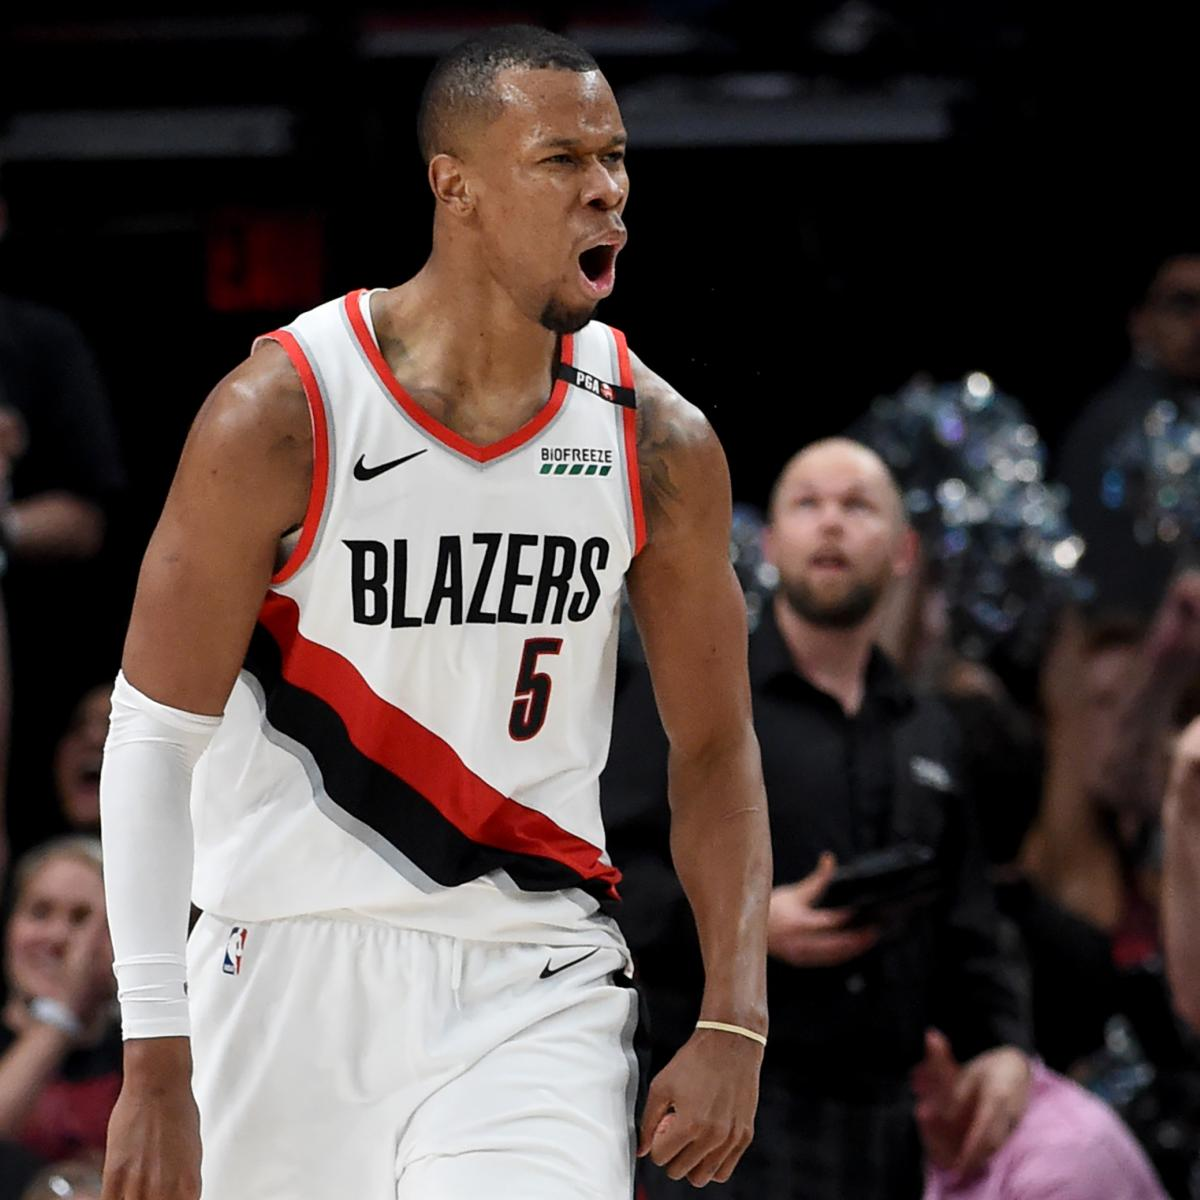 Blazers Injury Report: Blazers' Rodney Hood Helped Off With Knee Injury During